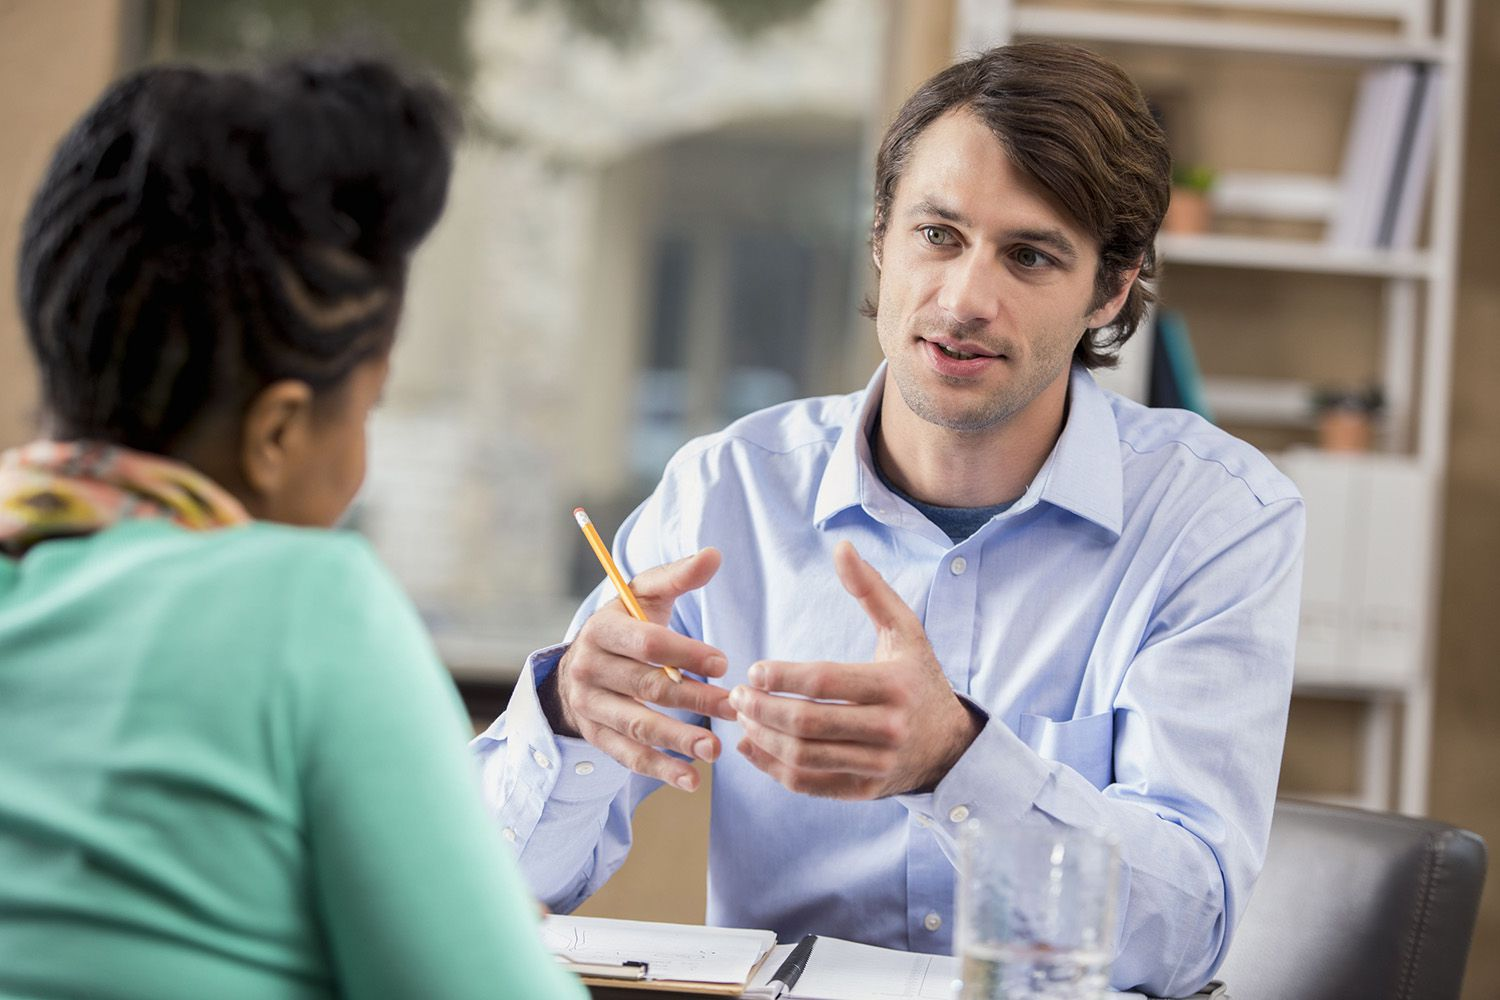 HR consultant interviewing a prospective employee.